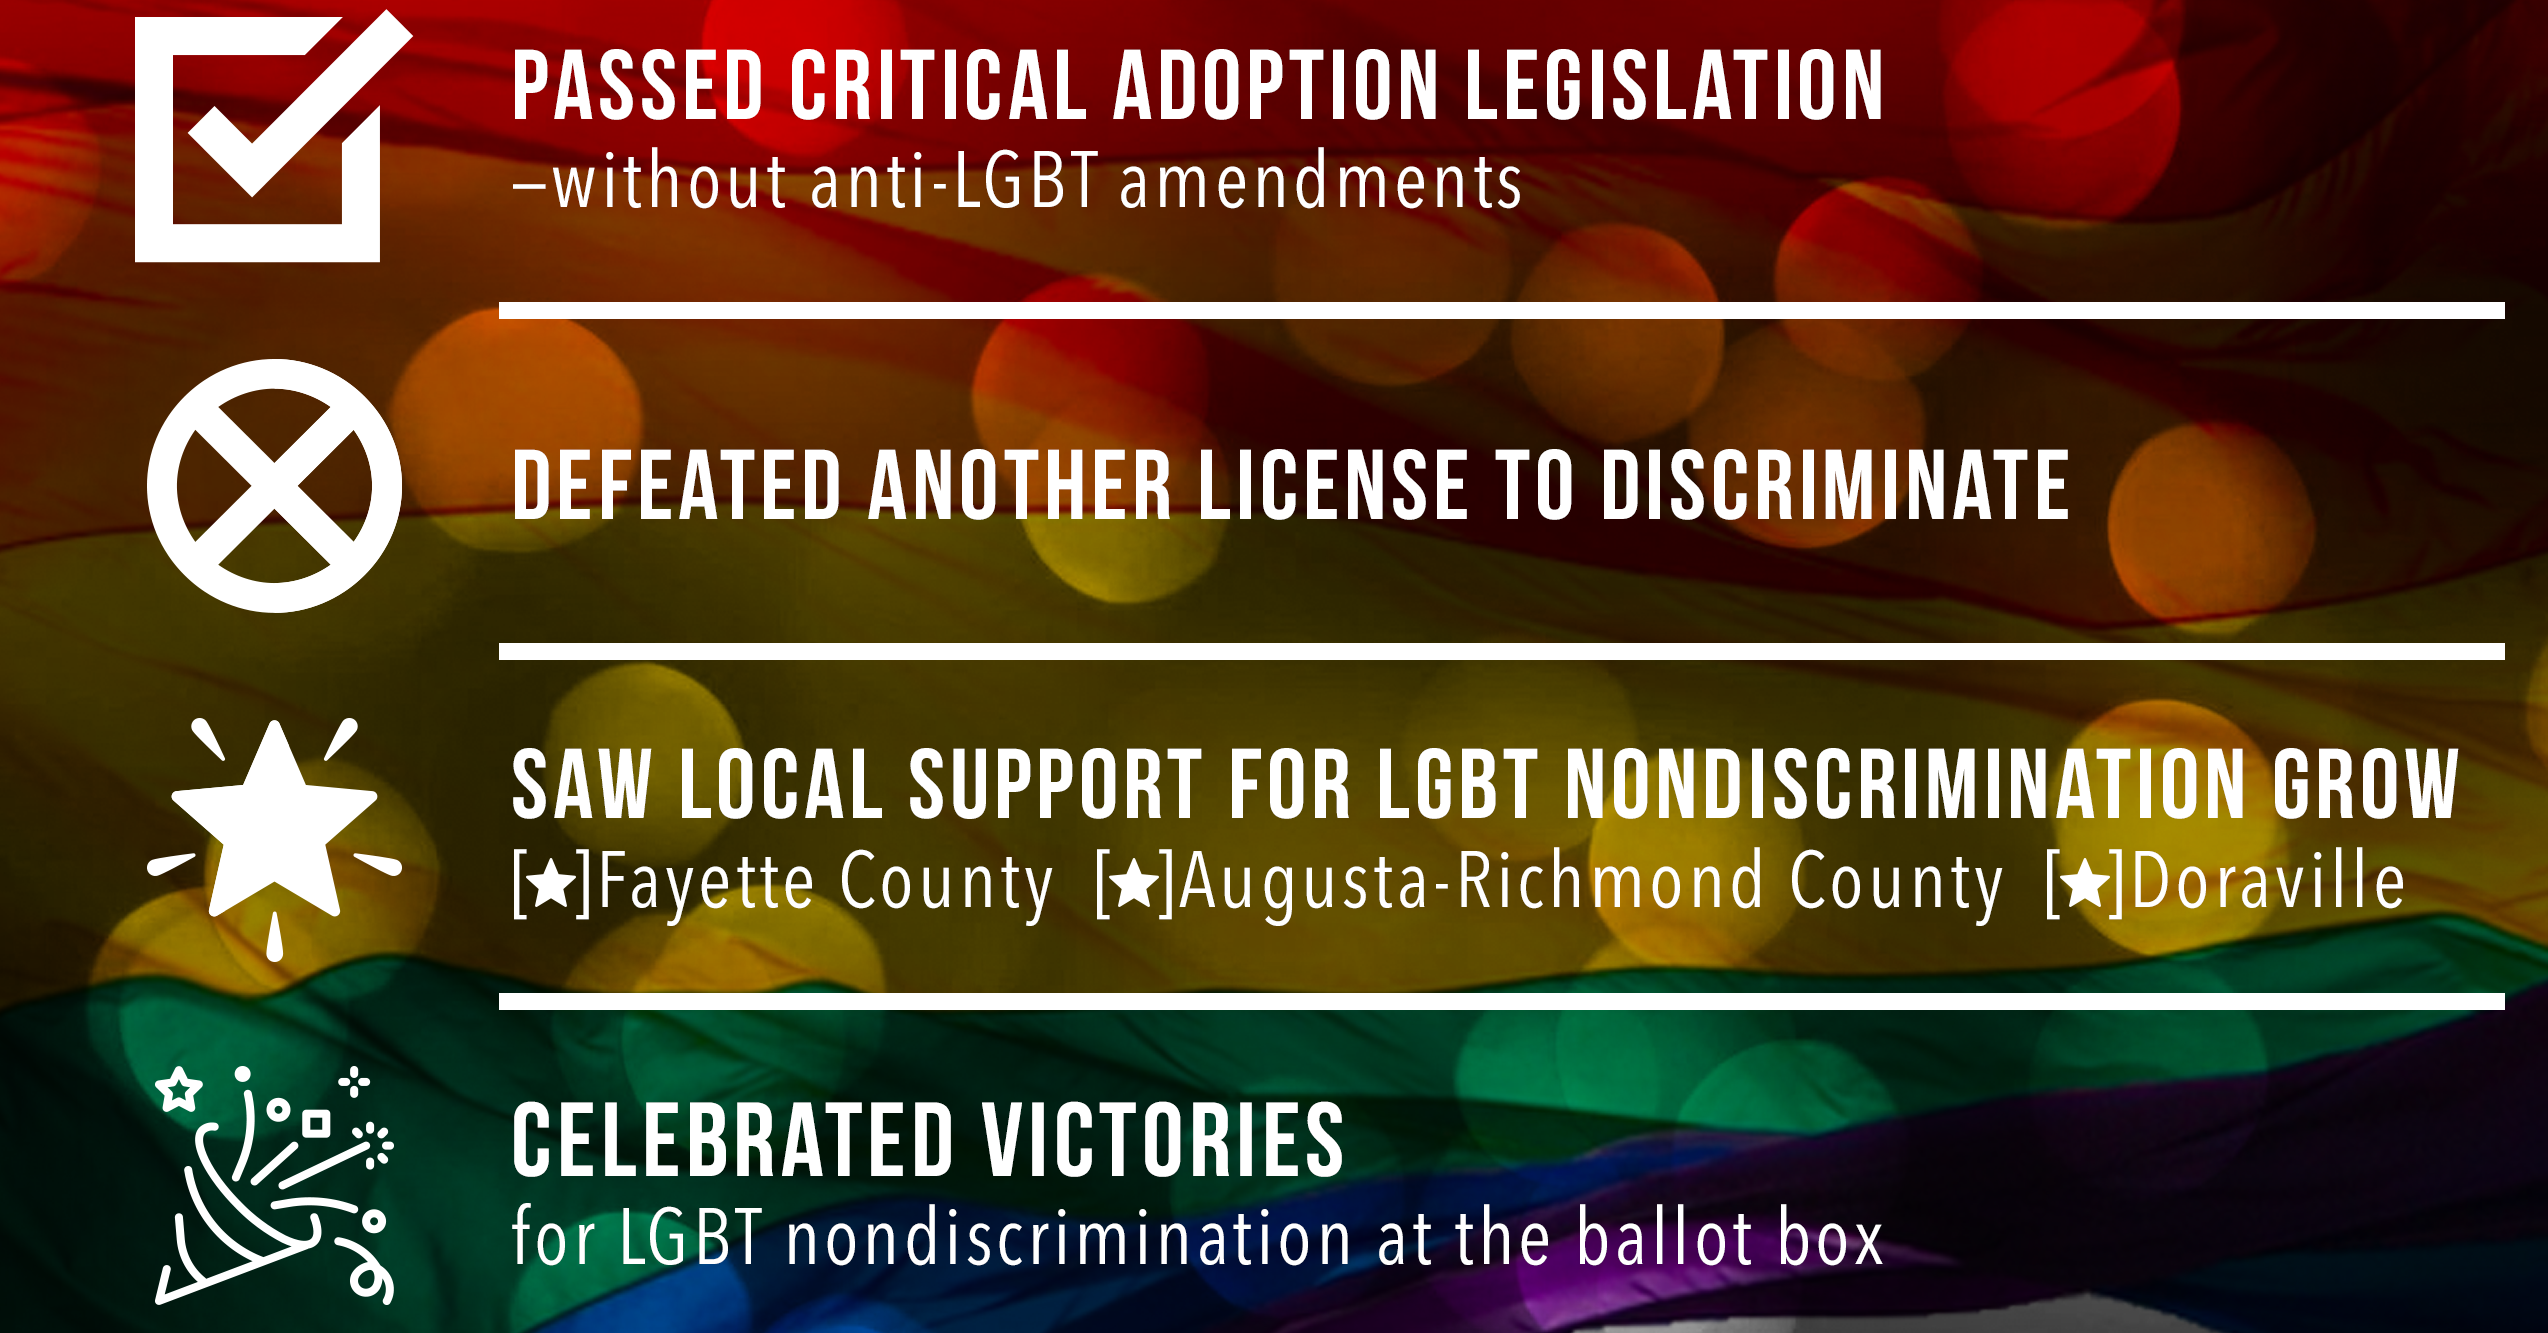 4 Things You Should Know About Georgia's Fight for LGBTQ Equality in 2018